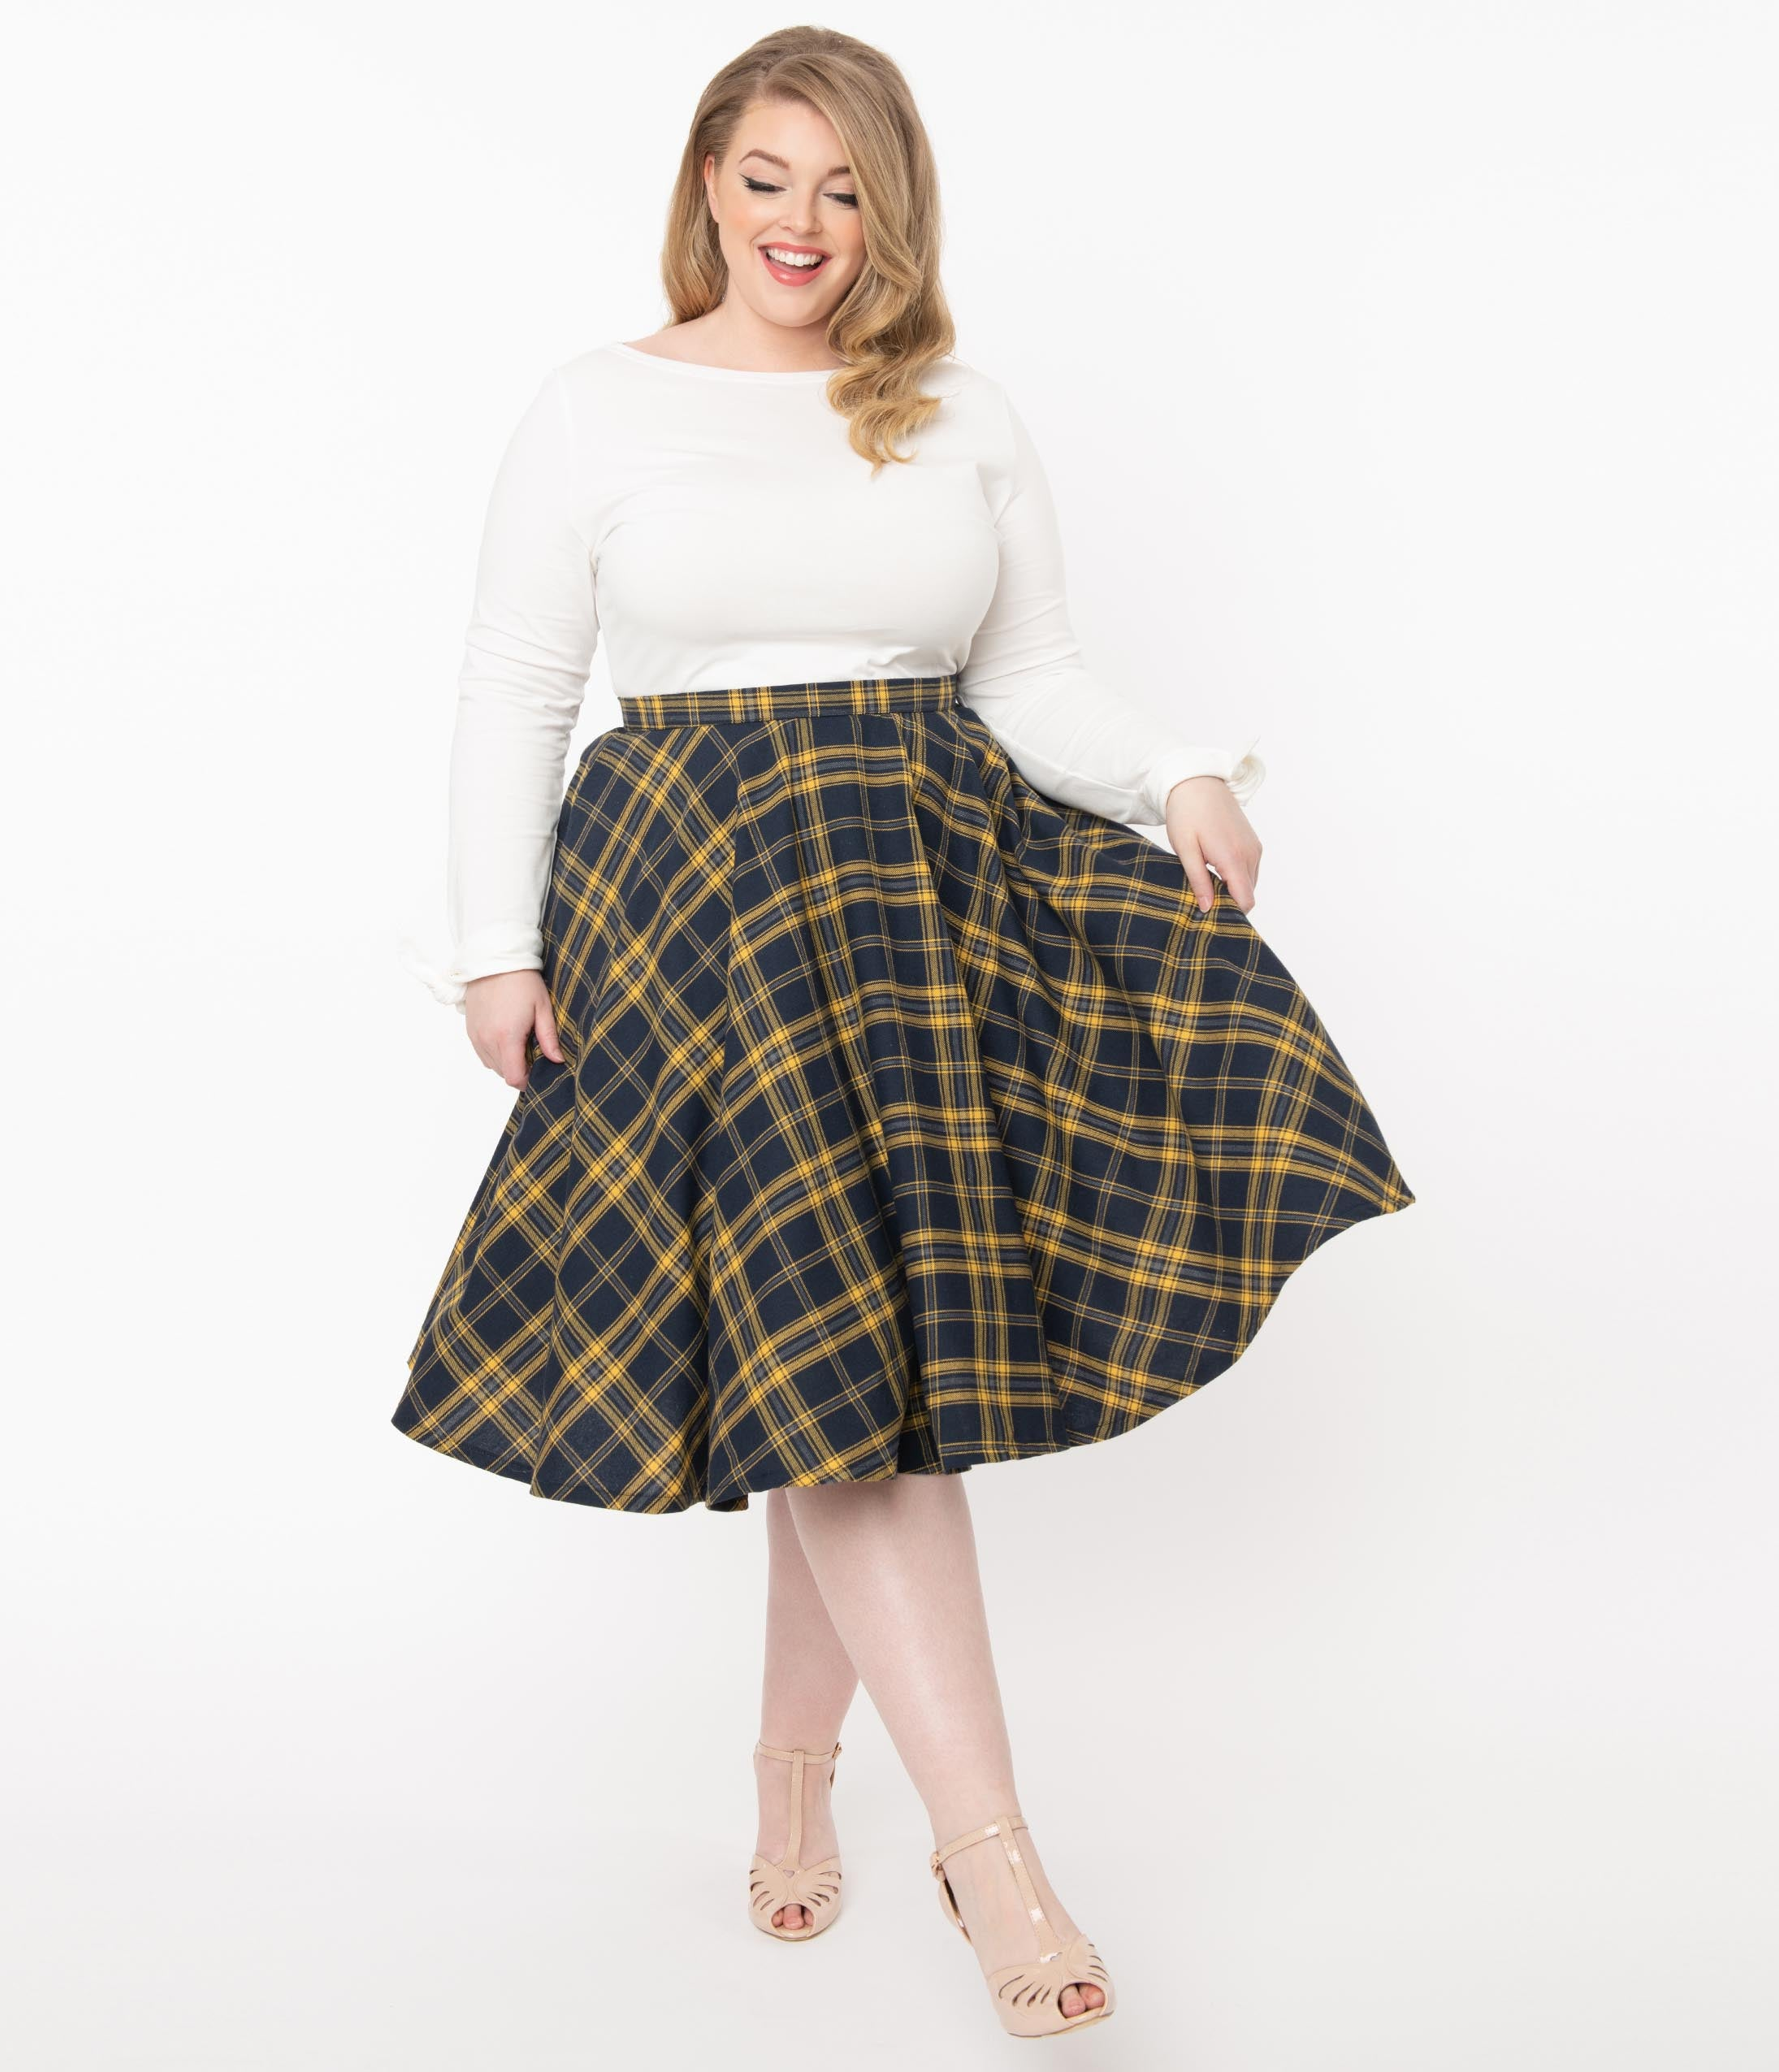 1950s Swing Skirt, Poodle Skirt, Pencil Skirts Plus Size Vintage Style Navy  Yellow Plaid Circle Swing Skirt $58.00 AT vintagedancer.com